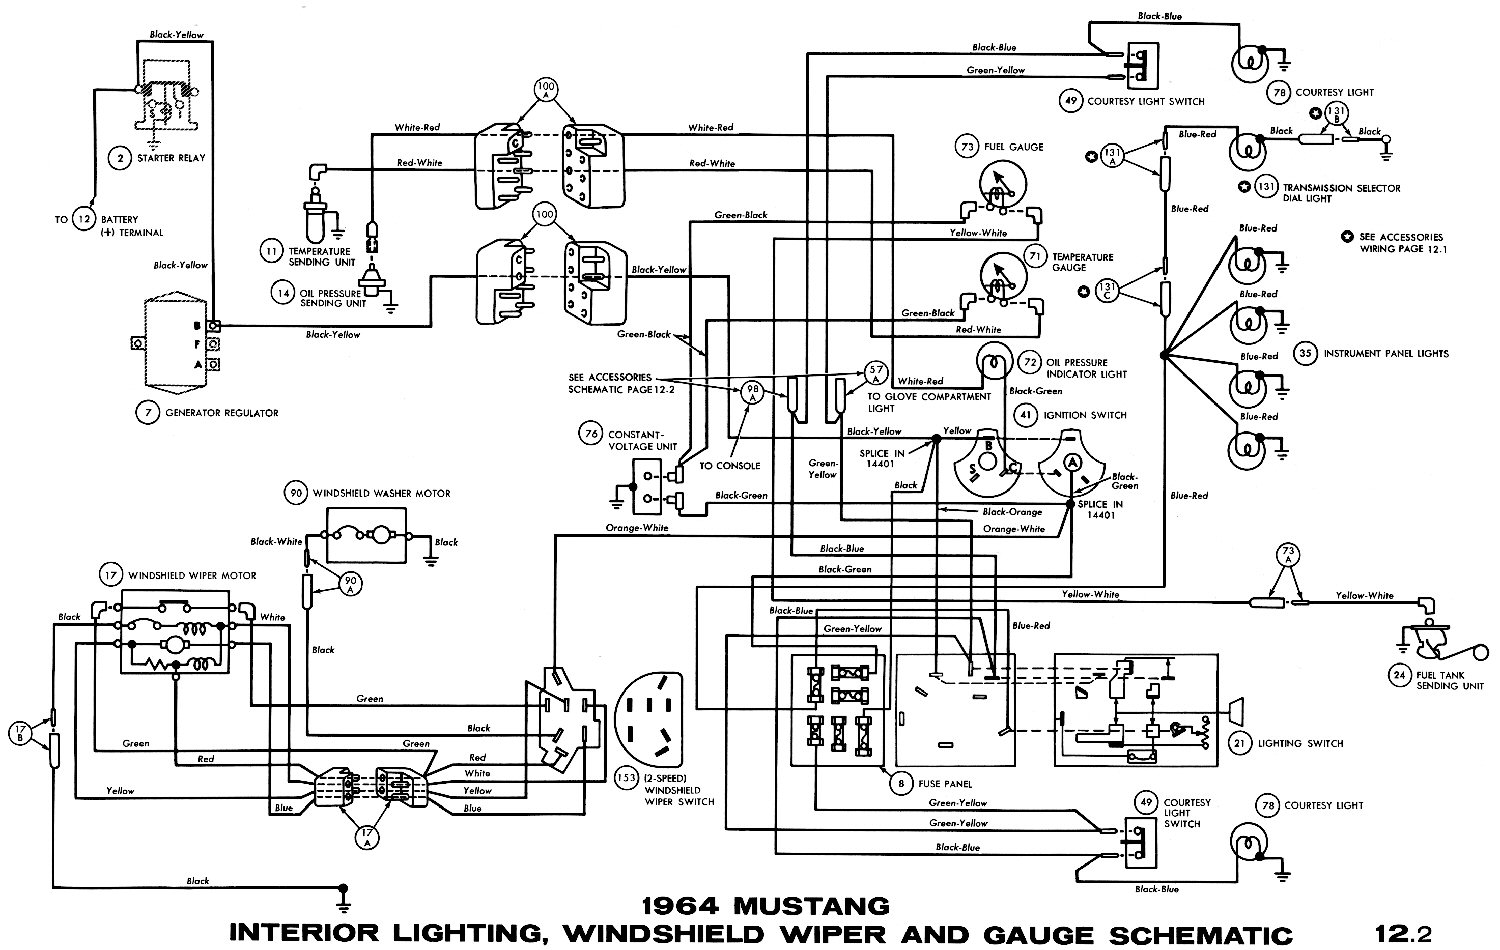 1964k 1967 mustang wiring diagram 1967 mustang radio wiring diagram 1970 Mustang Wiring Harness at creativeand.co